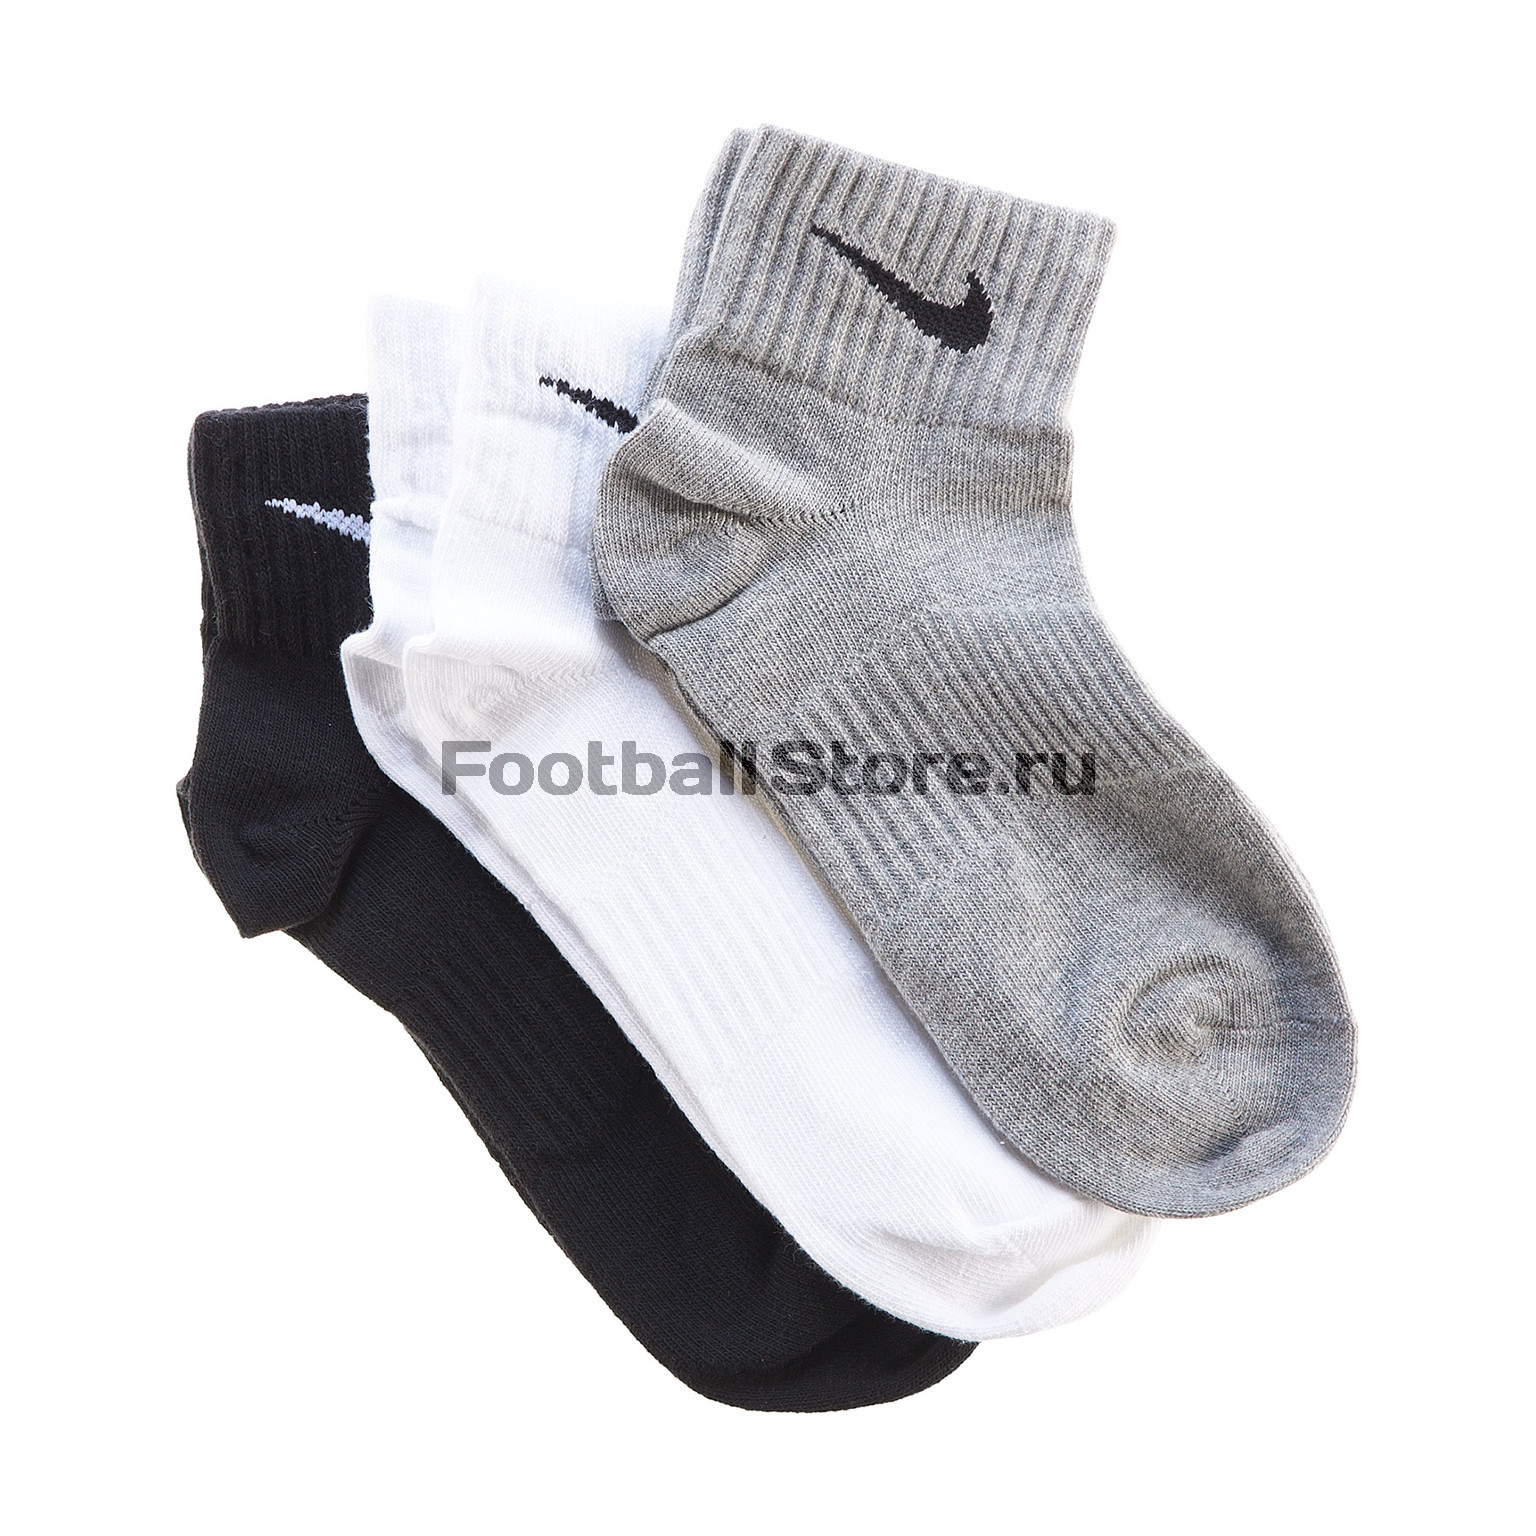 Комплект носков Nike 3ppk lightweight quarter комплект носков nike 3ppk cushion crew sx4700 901